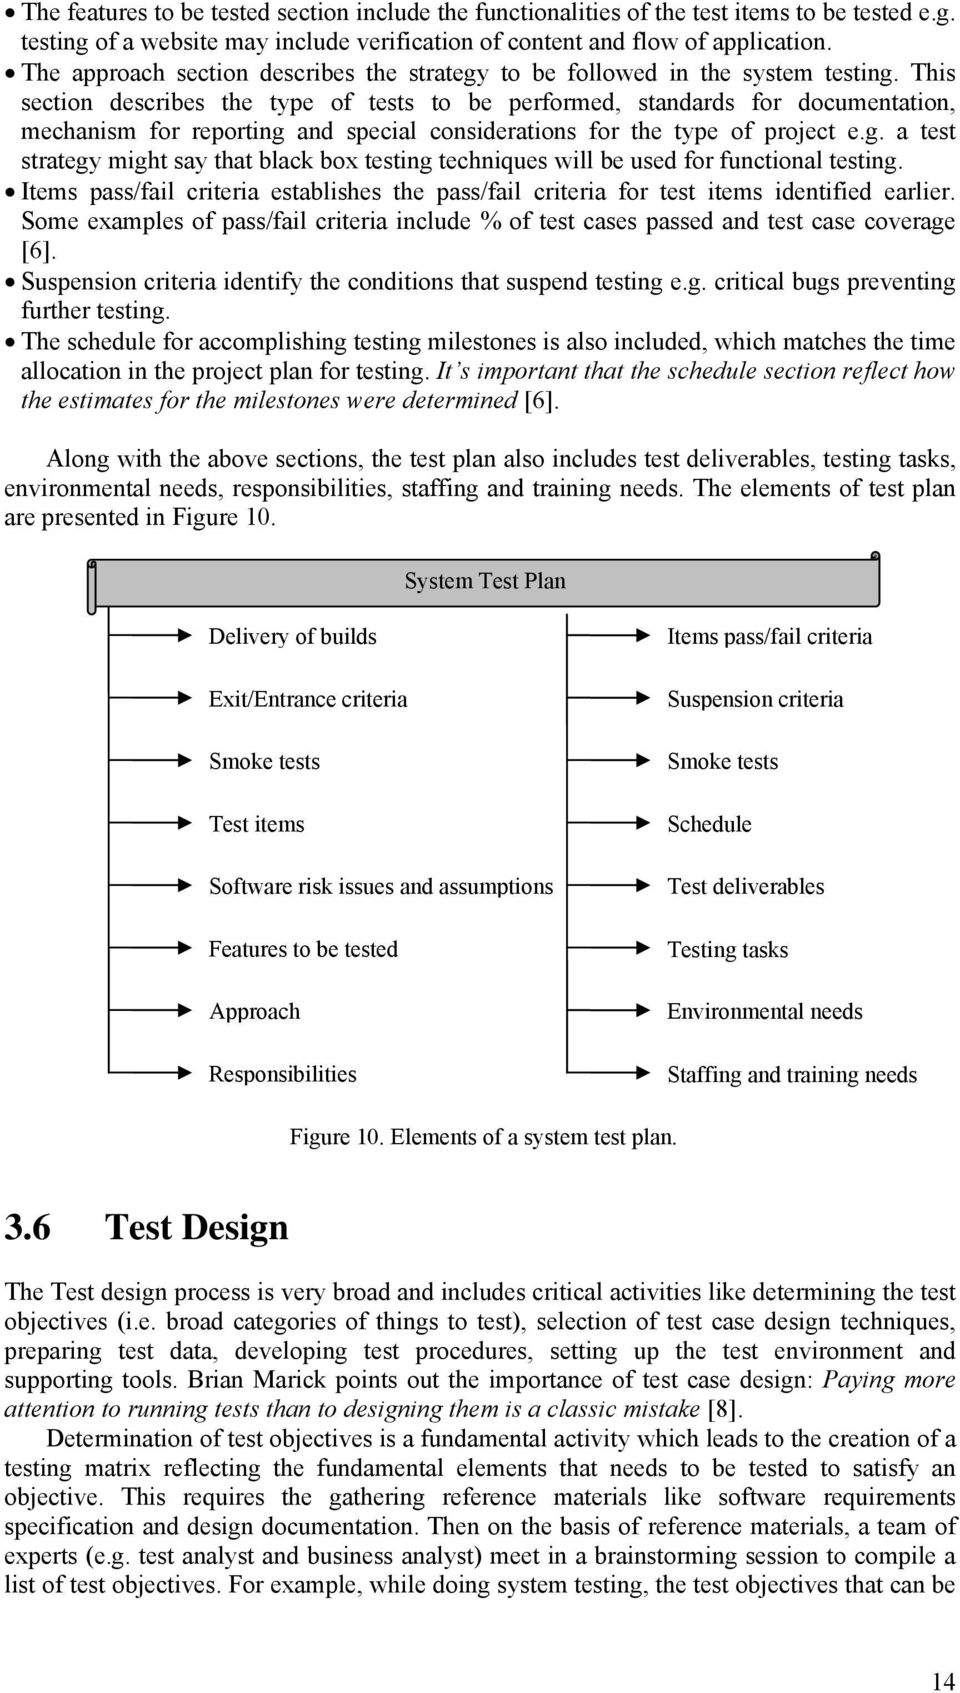 This section describes the type of tests to be performed, standards for documentation, mechanism for reporting